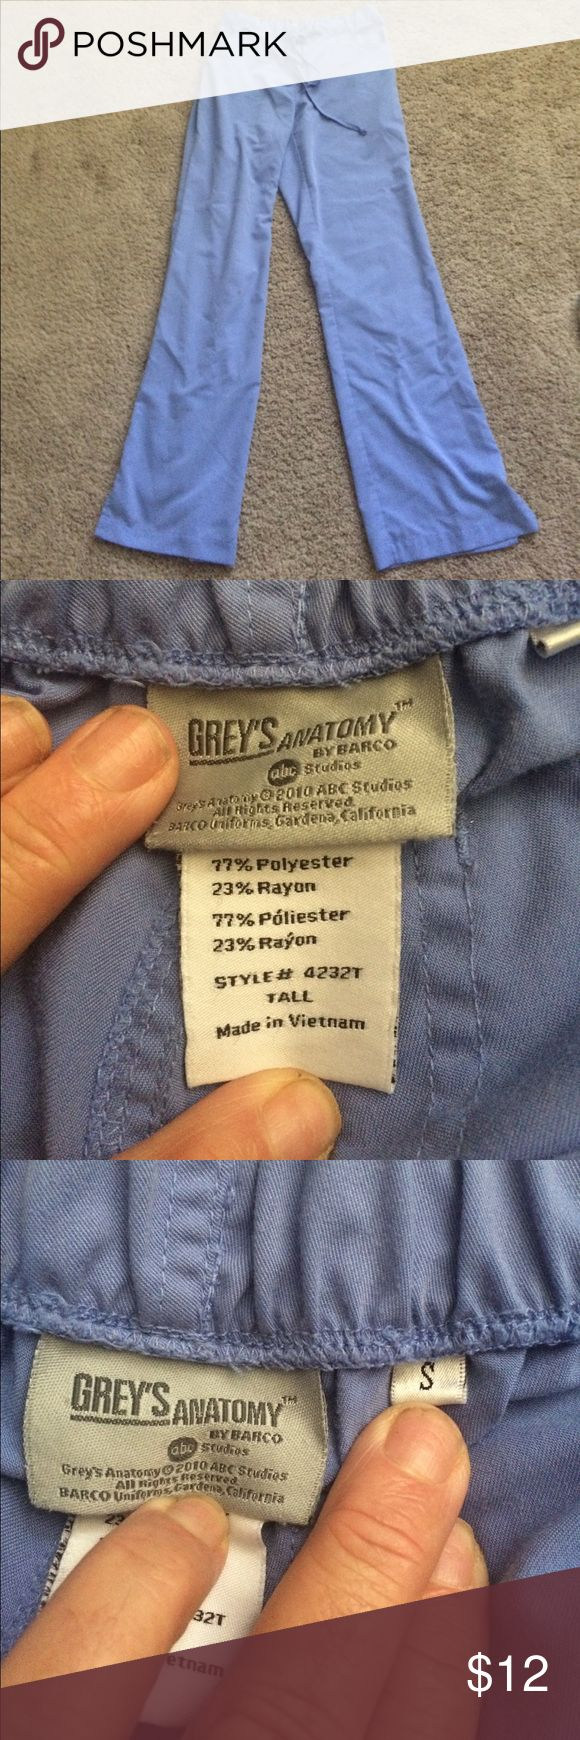 Gray's anatomy size small tall scrub pants Grey's Anatomy size small tall scrub pants see all my other scrubs would love to bundle and save you money grey's Anatomy Pants